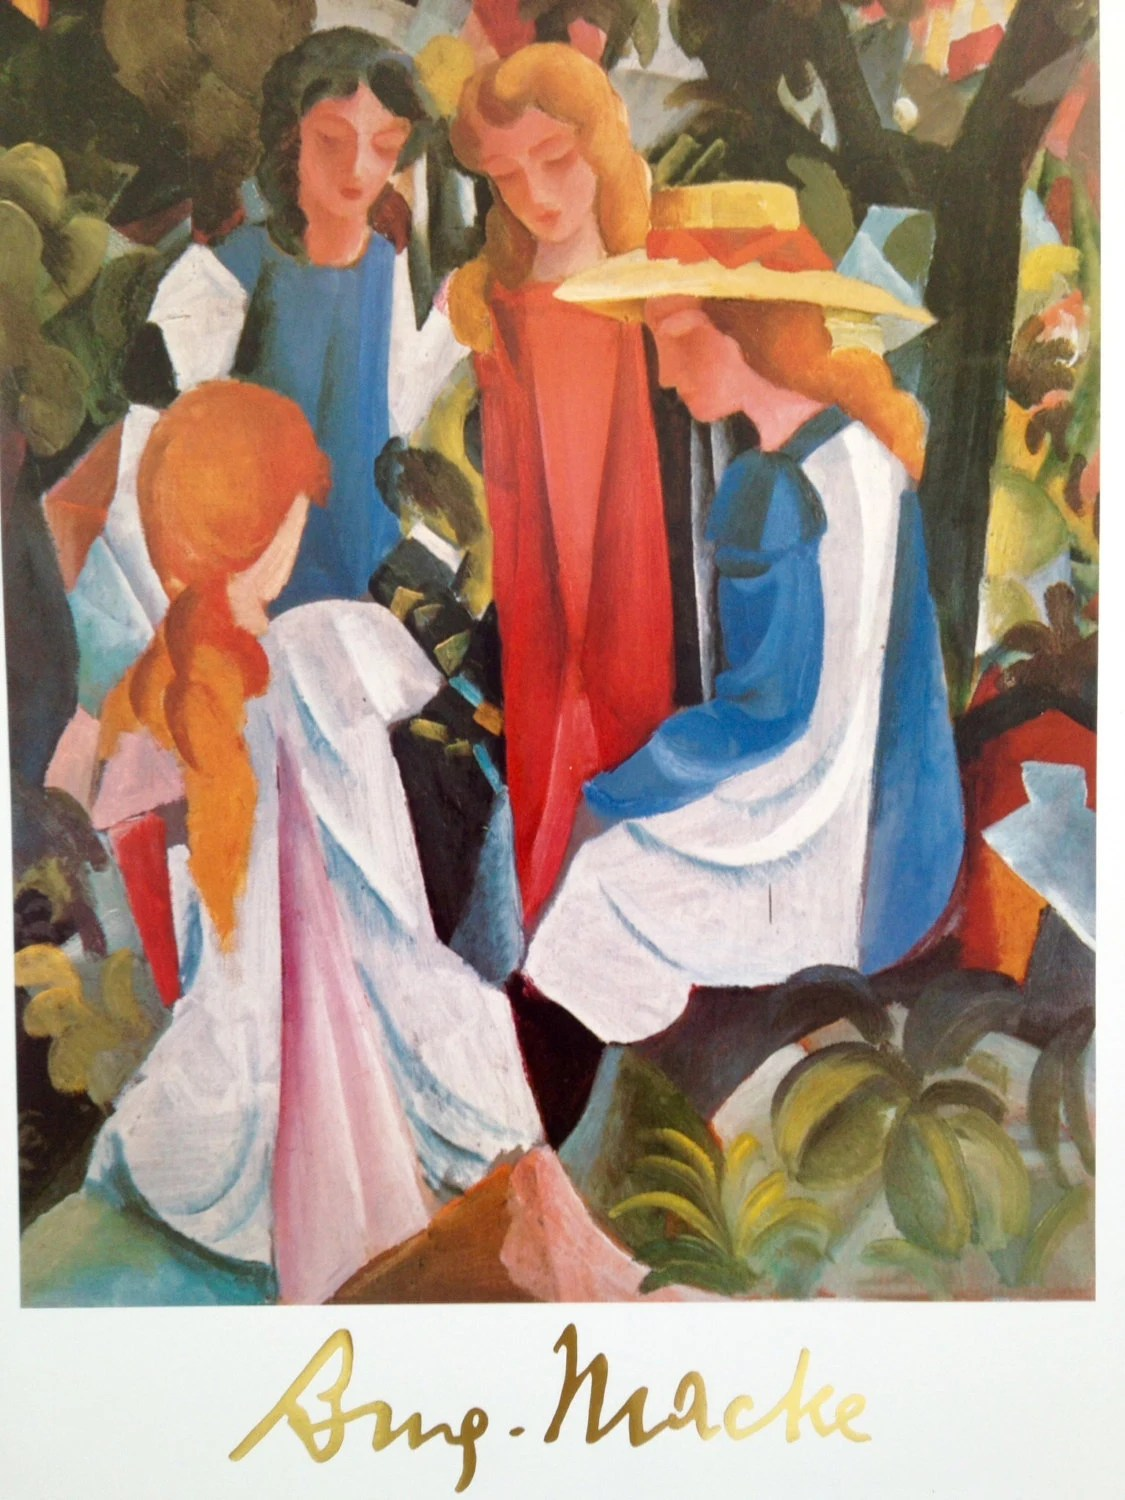 Della Pittura On Painting August Macke Quattro Ragazze Four Girls 1912 1913 Maestro Della Pittura Series N 301 Printed Copyrighted In Italy Vintage Print Poster